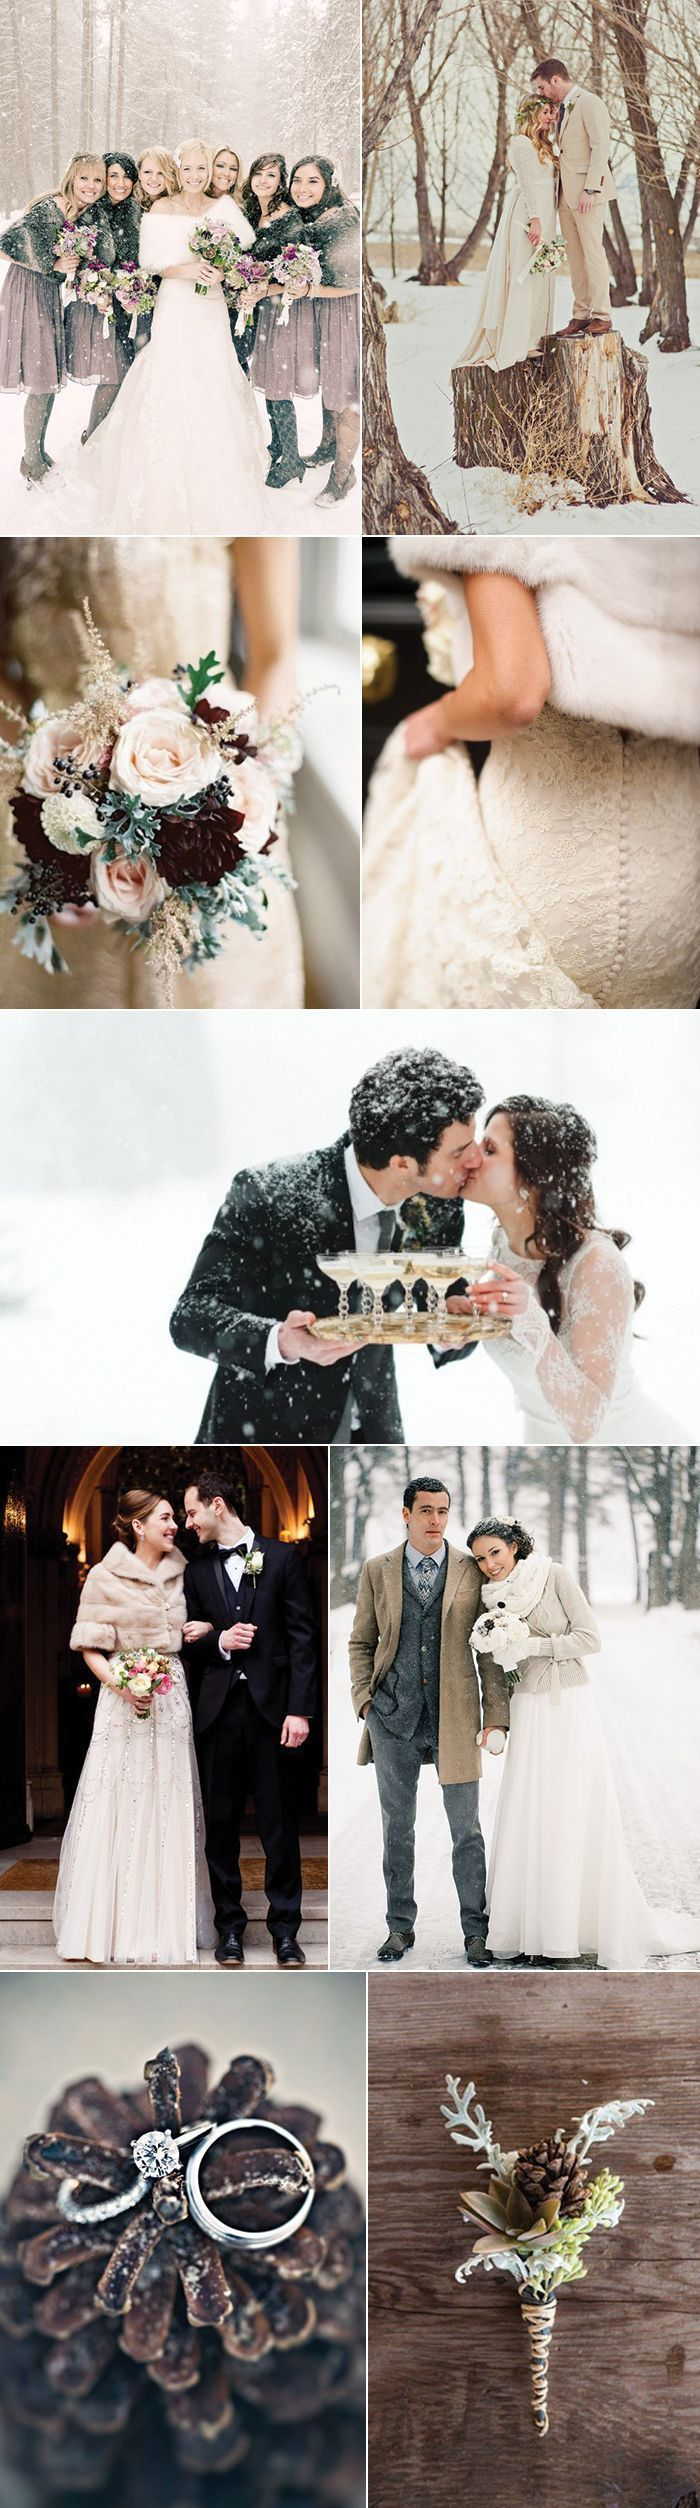 820522d52c3a0a66843c3e014f2c03bb - hochzeit im winter kleidung 15 beste Outfits